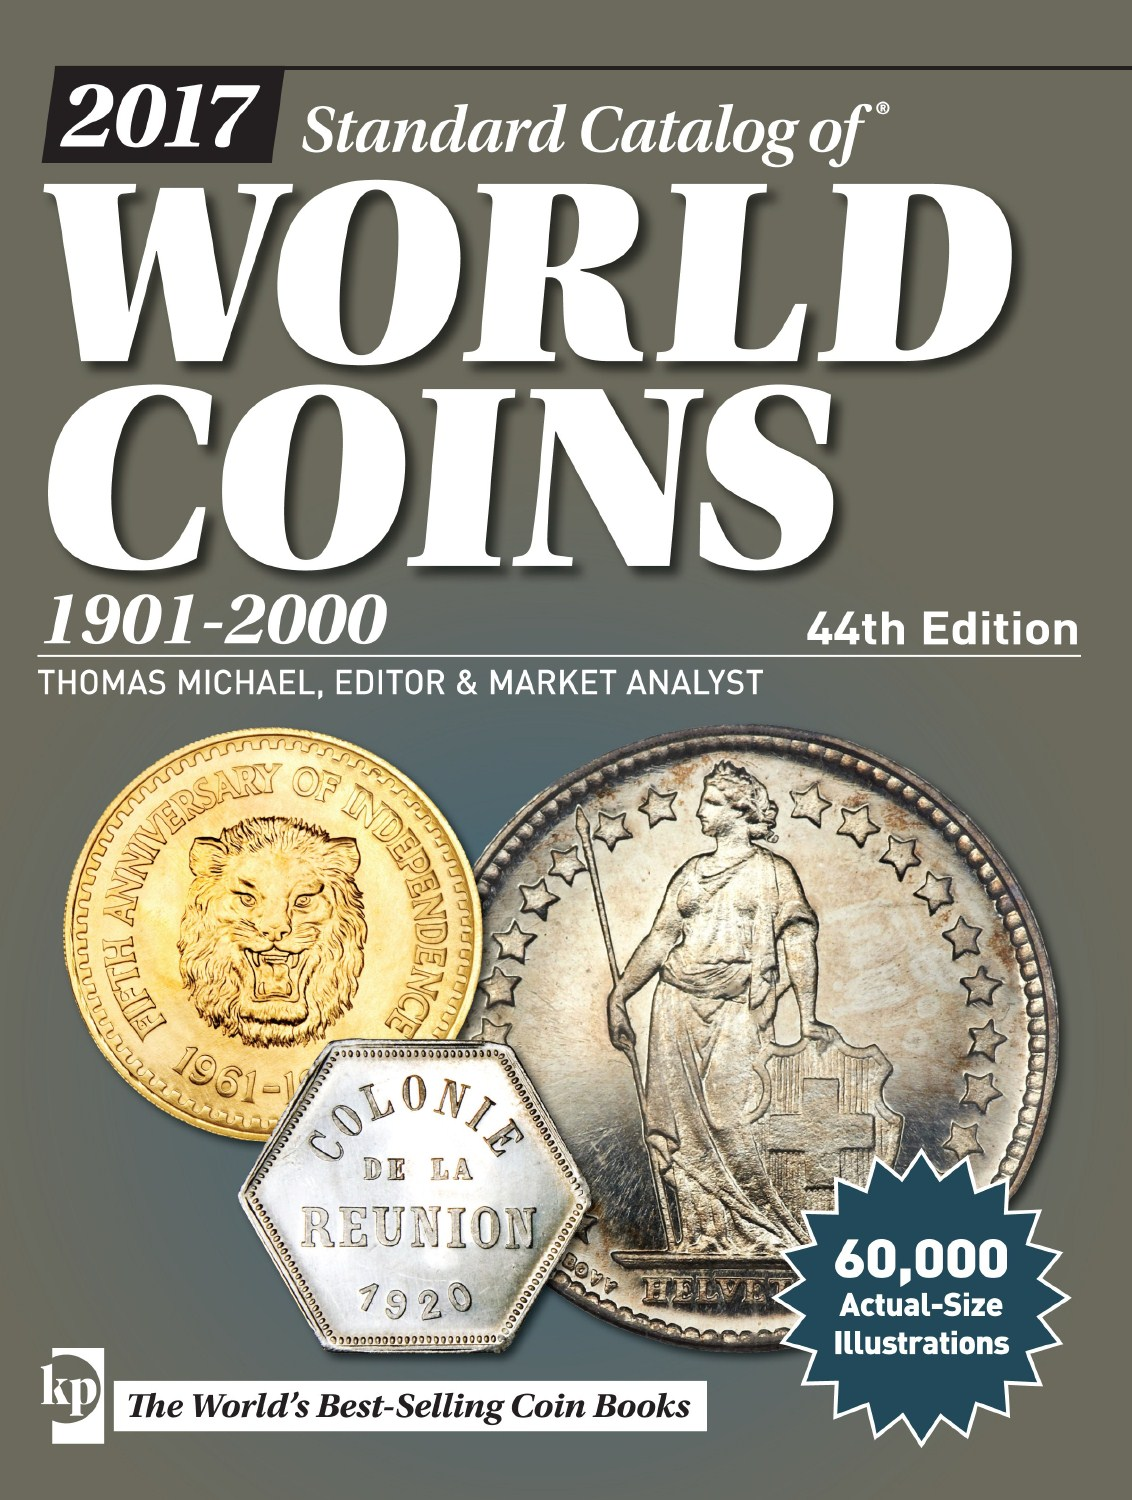 2017 Standard Catalog of World Coins 1901-2000 (44th Edition) S_l1000